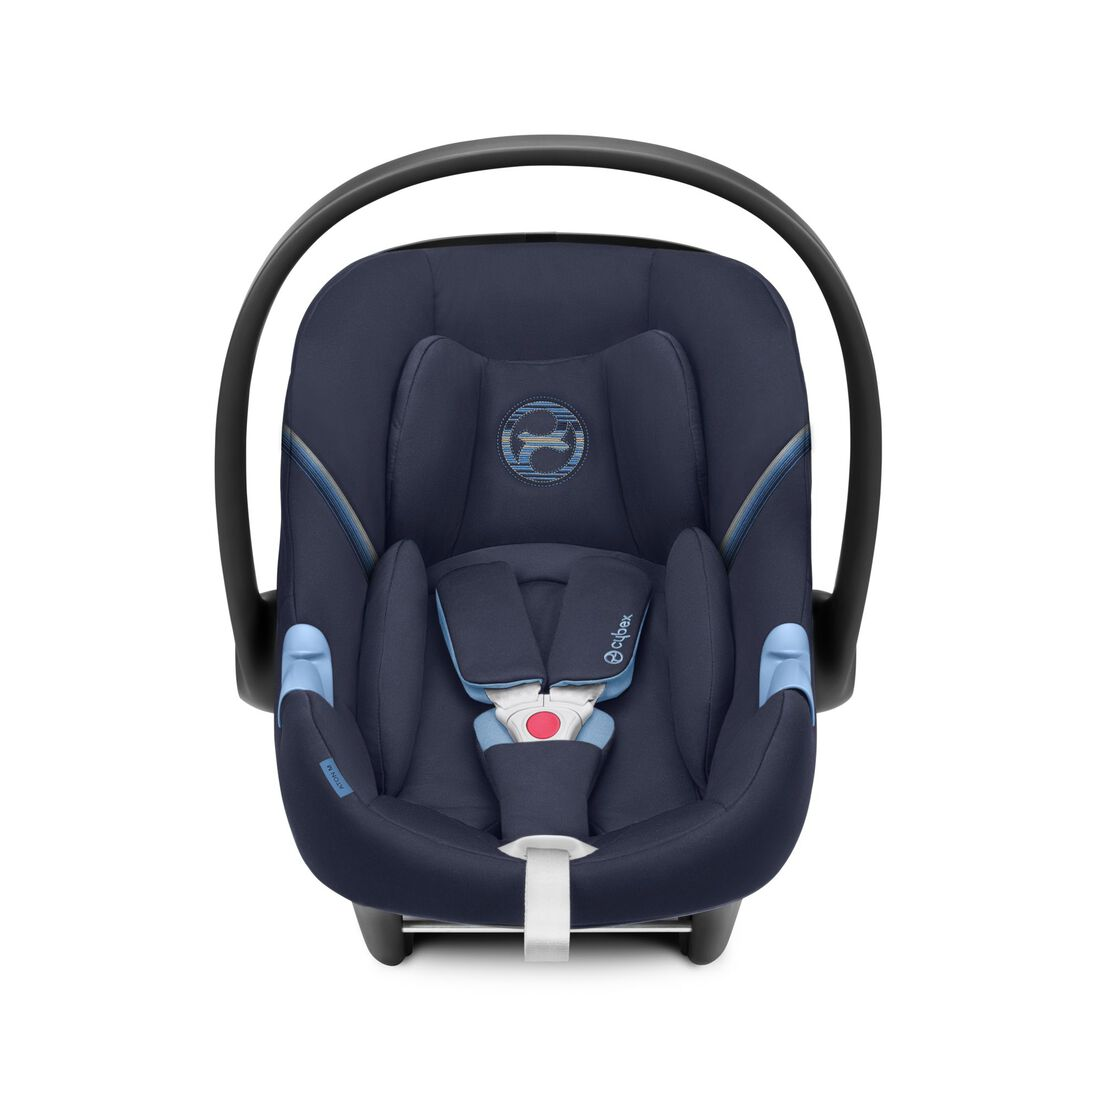 CYBEX Aton M i-Size - Navy Blue in Navy Blue large Bild 3